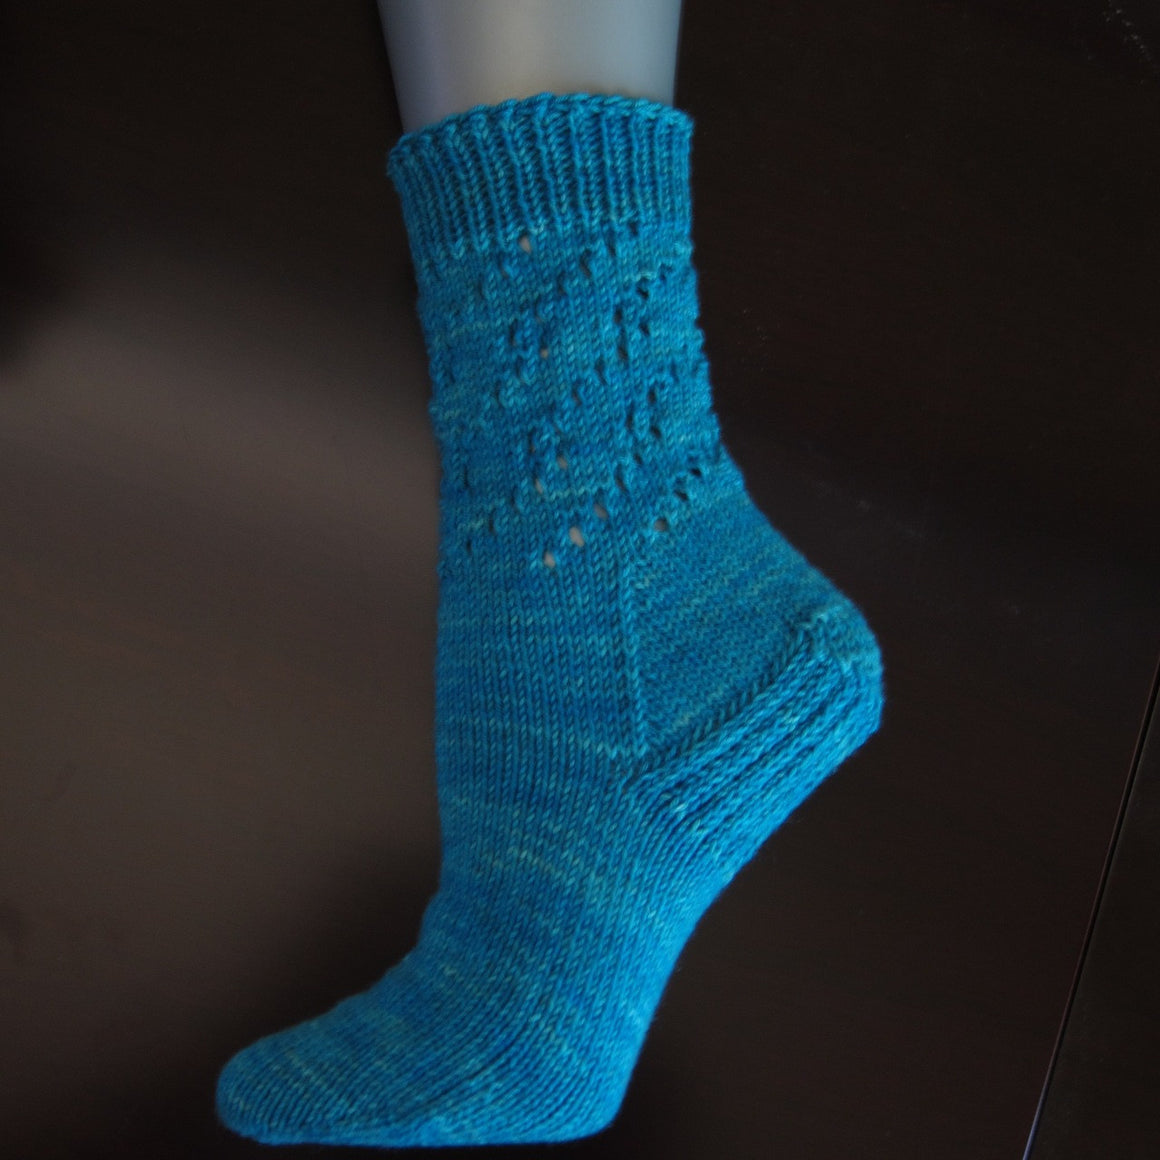 The Ruth's Reversal socks are done with one skein of Knitting Rose Budding Sock yarn. Budding Sock yarn is a superwash wool and bison blend in a fingering weight yarn. These socks are designed by the Knitting Rose, Lise Wilson.